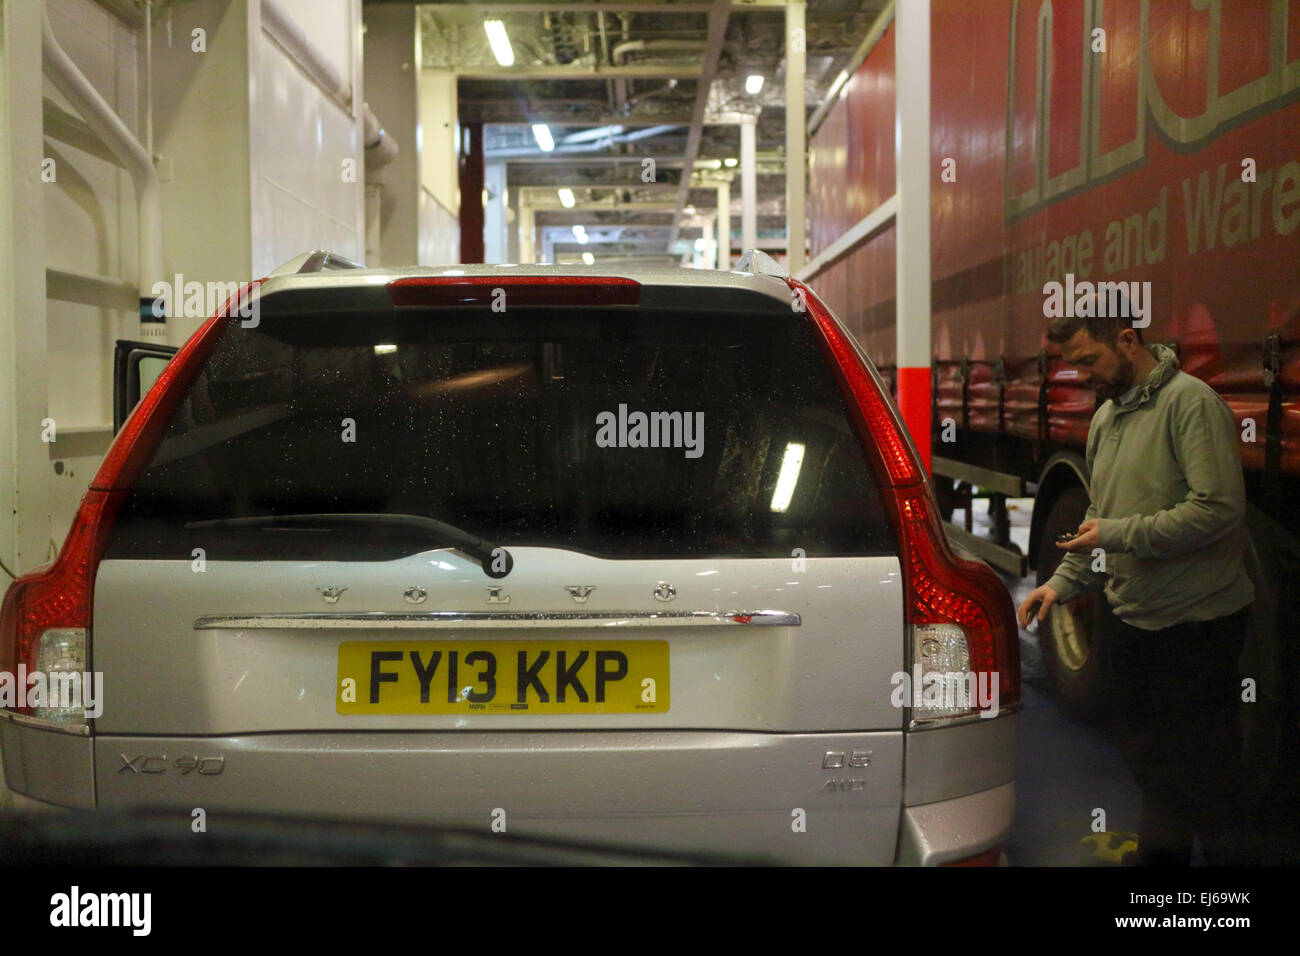 man locking car on ferry deck in the uk Stock Photo